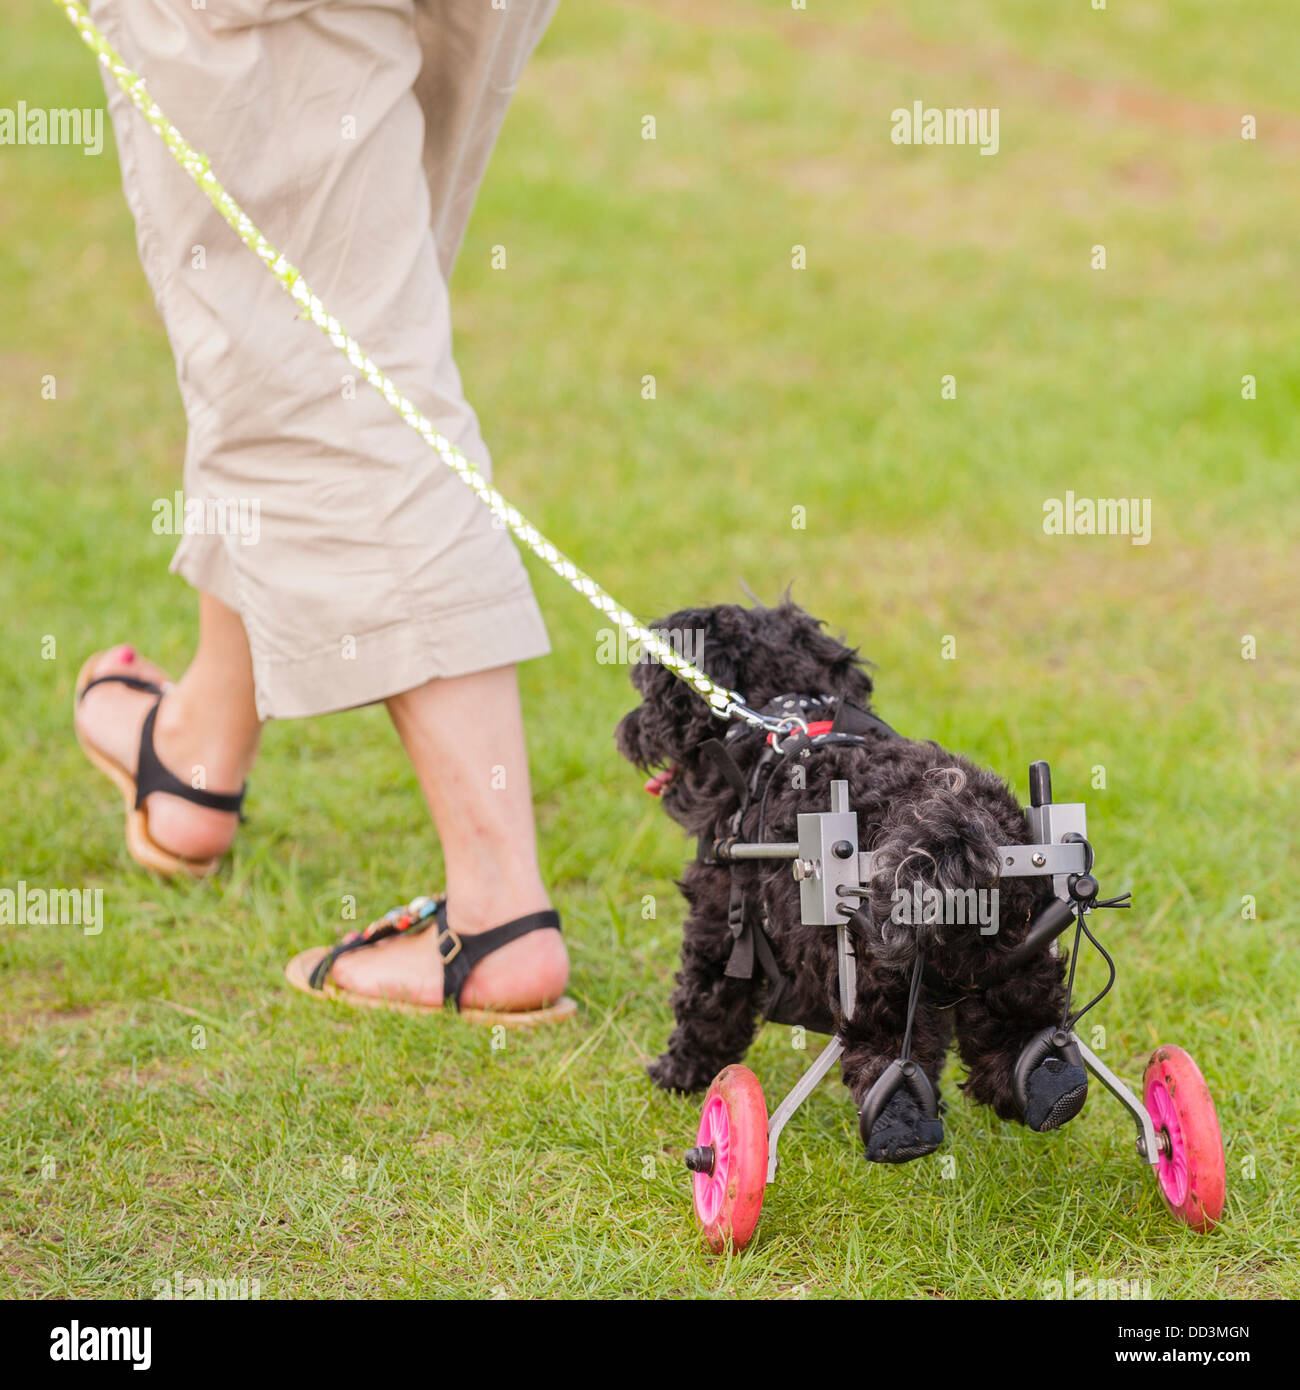 August 25th,2013,fantastic weather brings out this happy dog who has lost the use of his back legs and has a specially - Stock Image